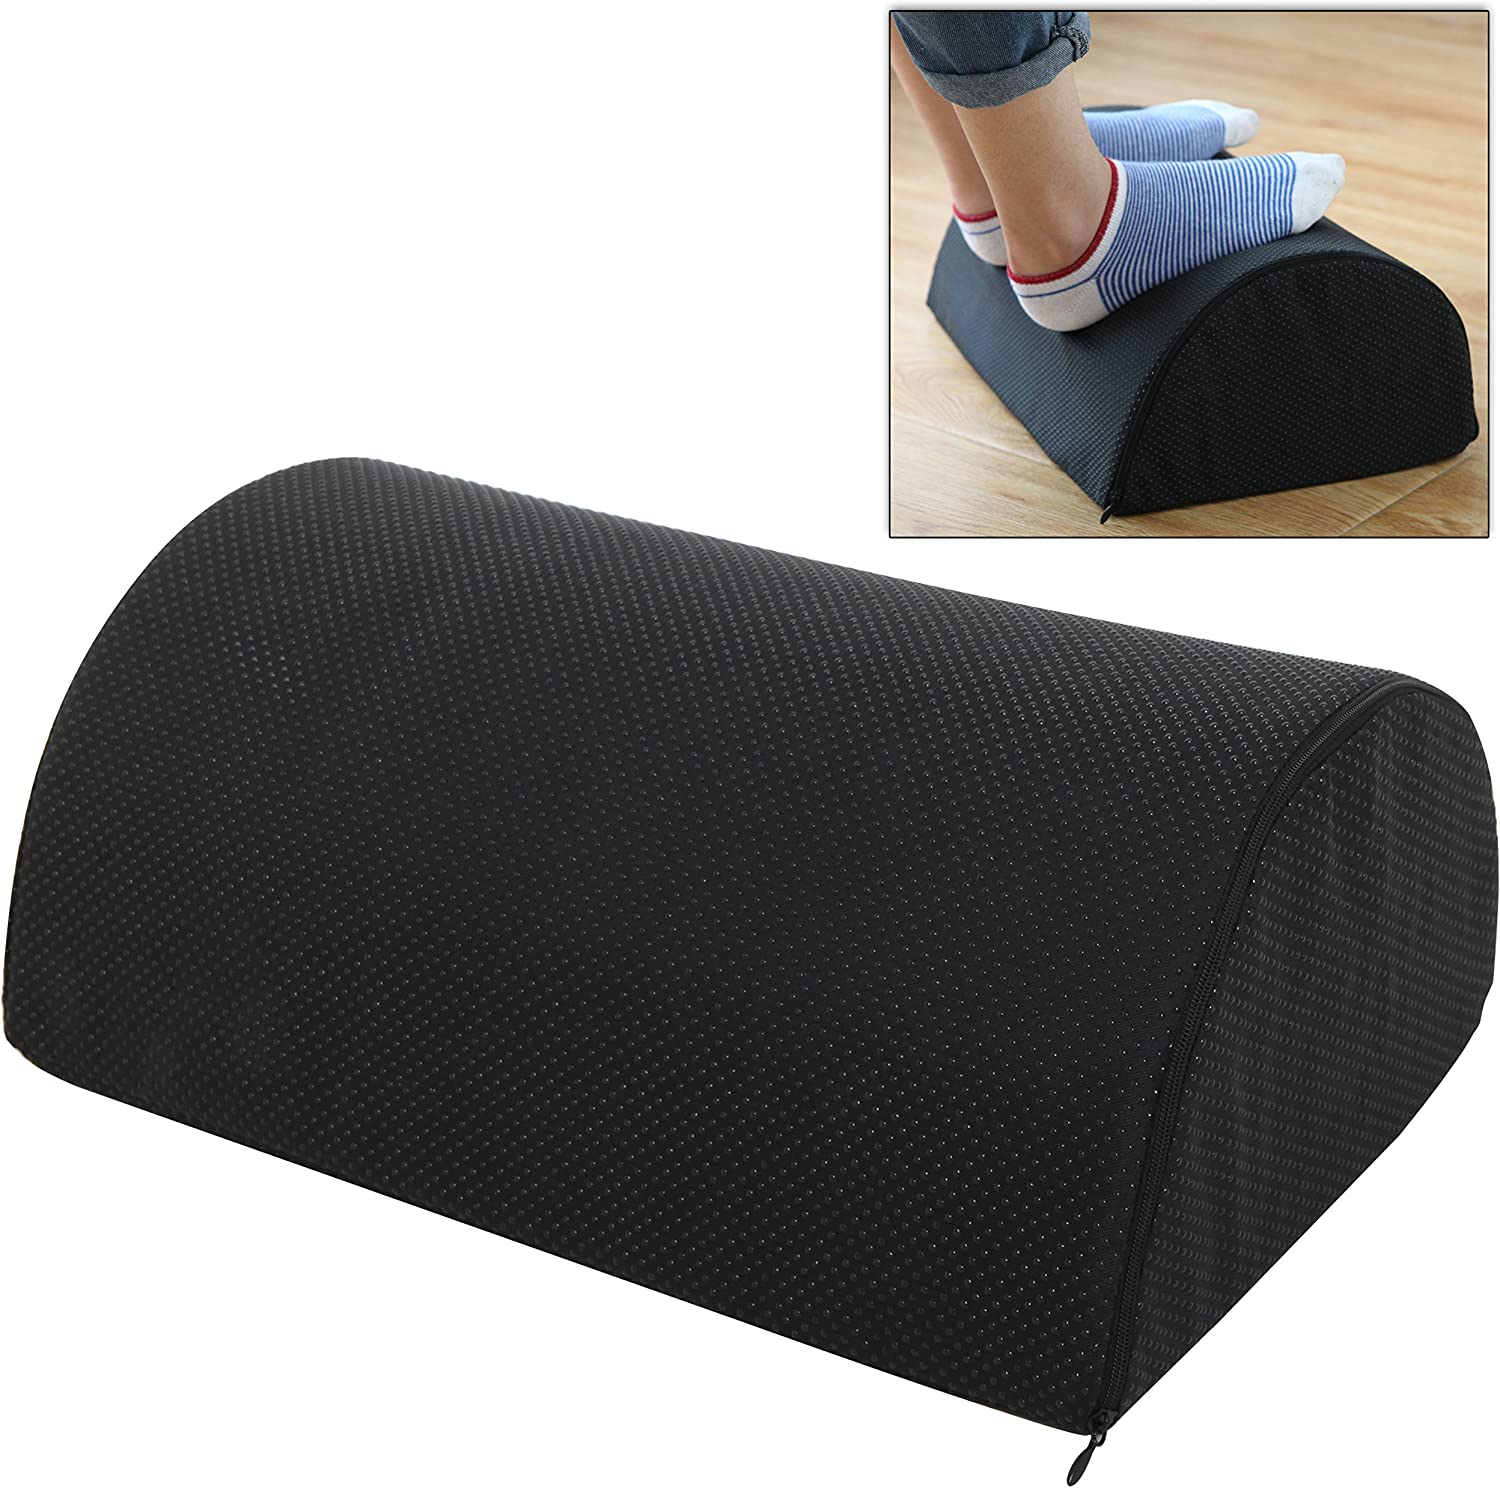 16 inch Half Cylinder Foam Upholstered Foot Cushion Leg Elevator, Removable Black Cotton Cover Support Pillow